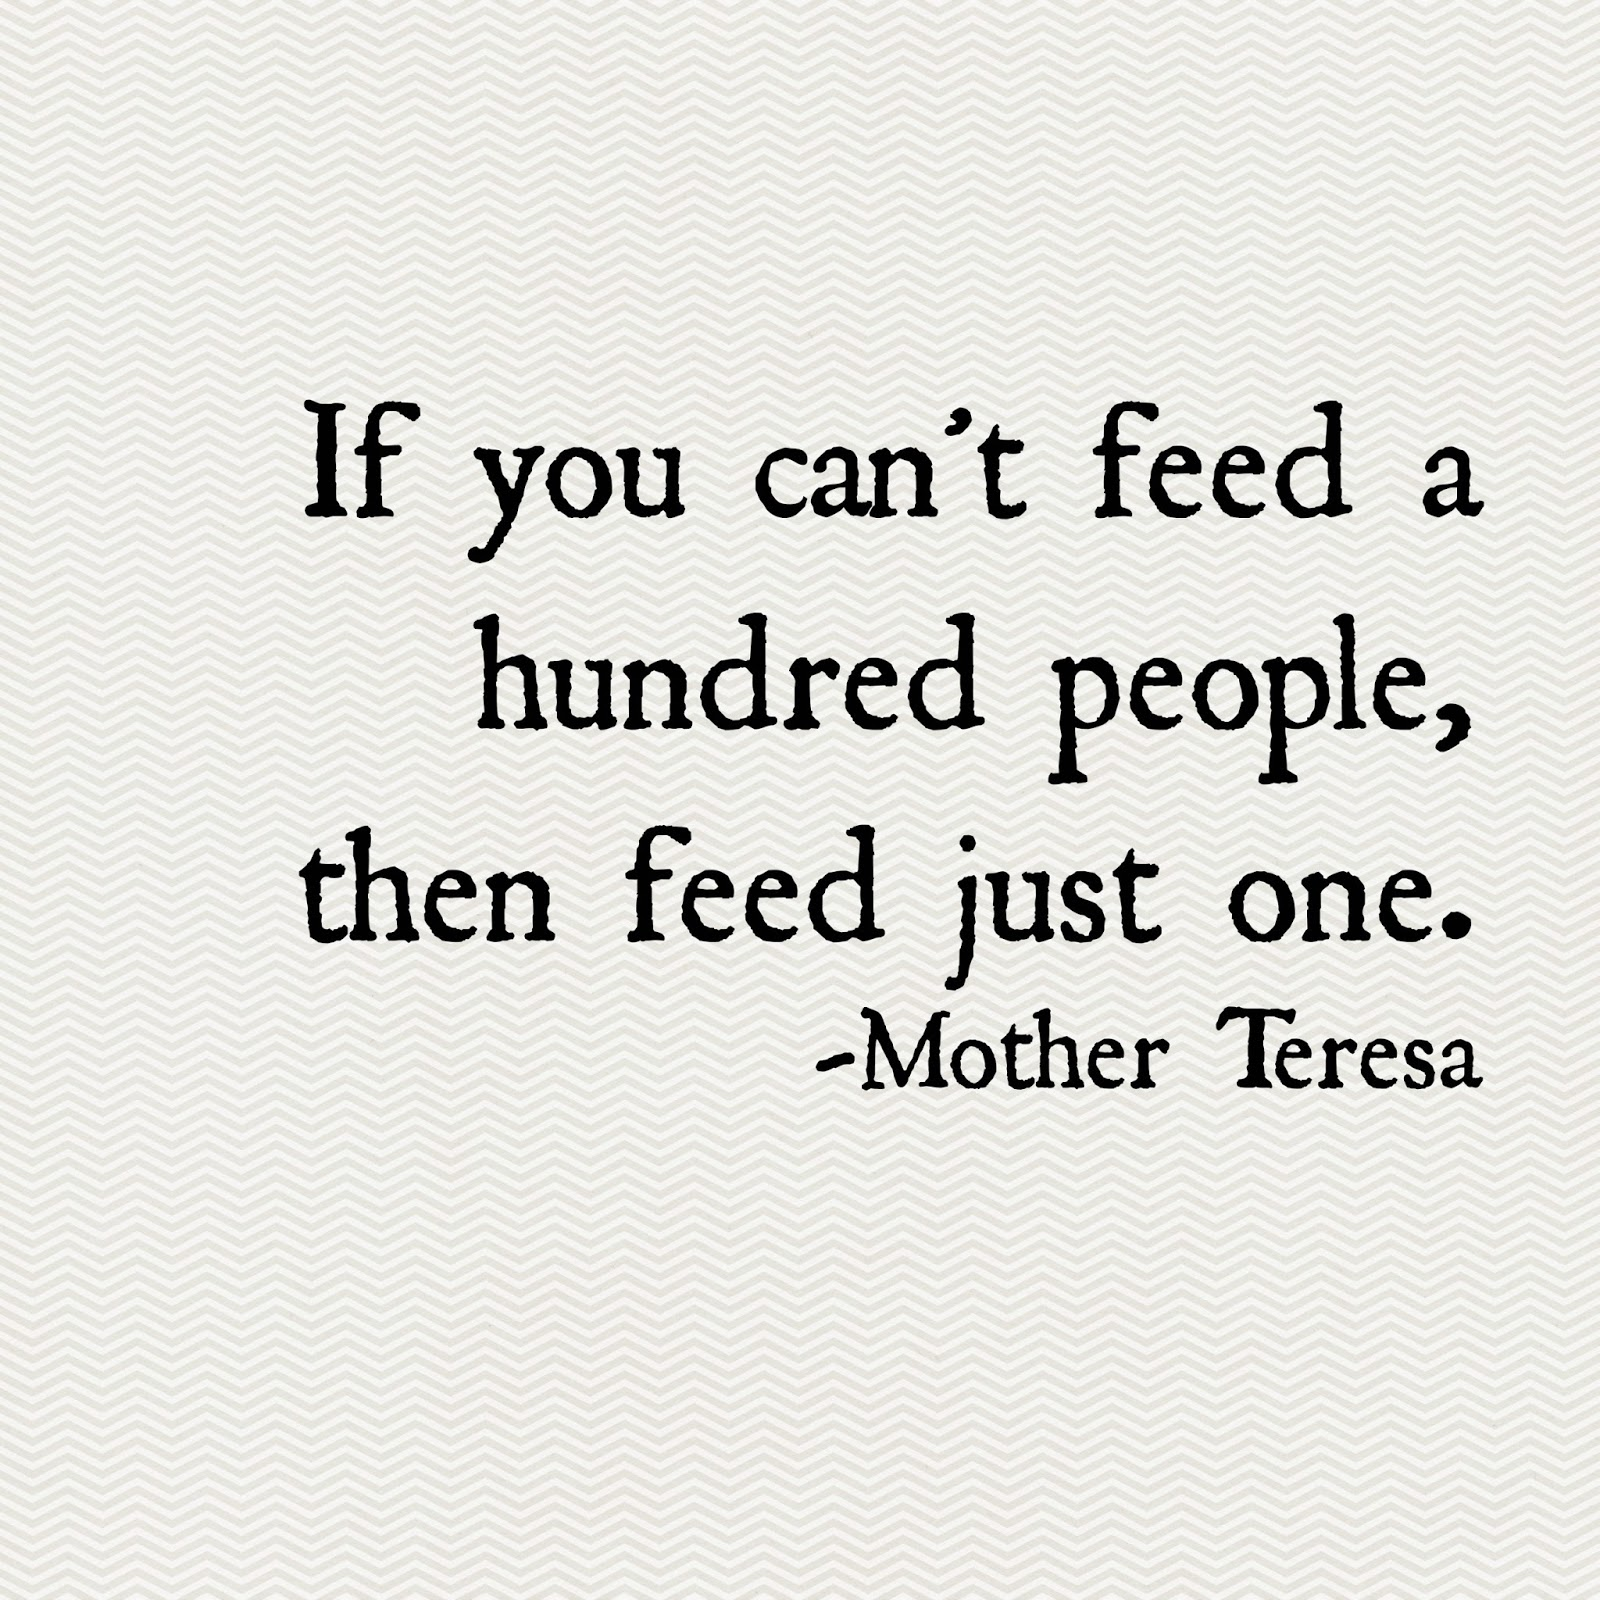 Quotes About Homelessness Feeding The Homeless Quotes Beauteous Feeding The Homeless Quotes